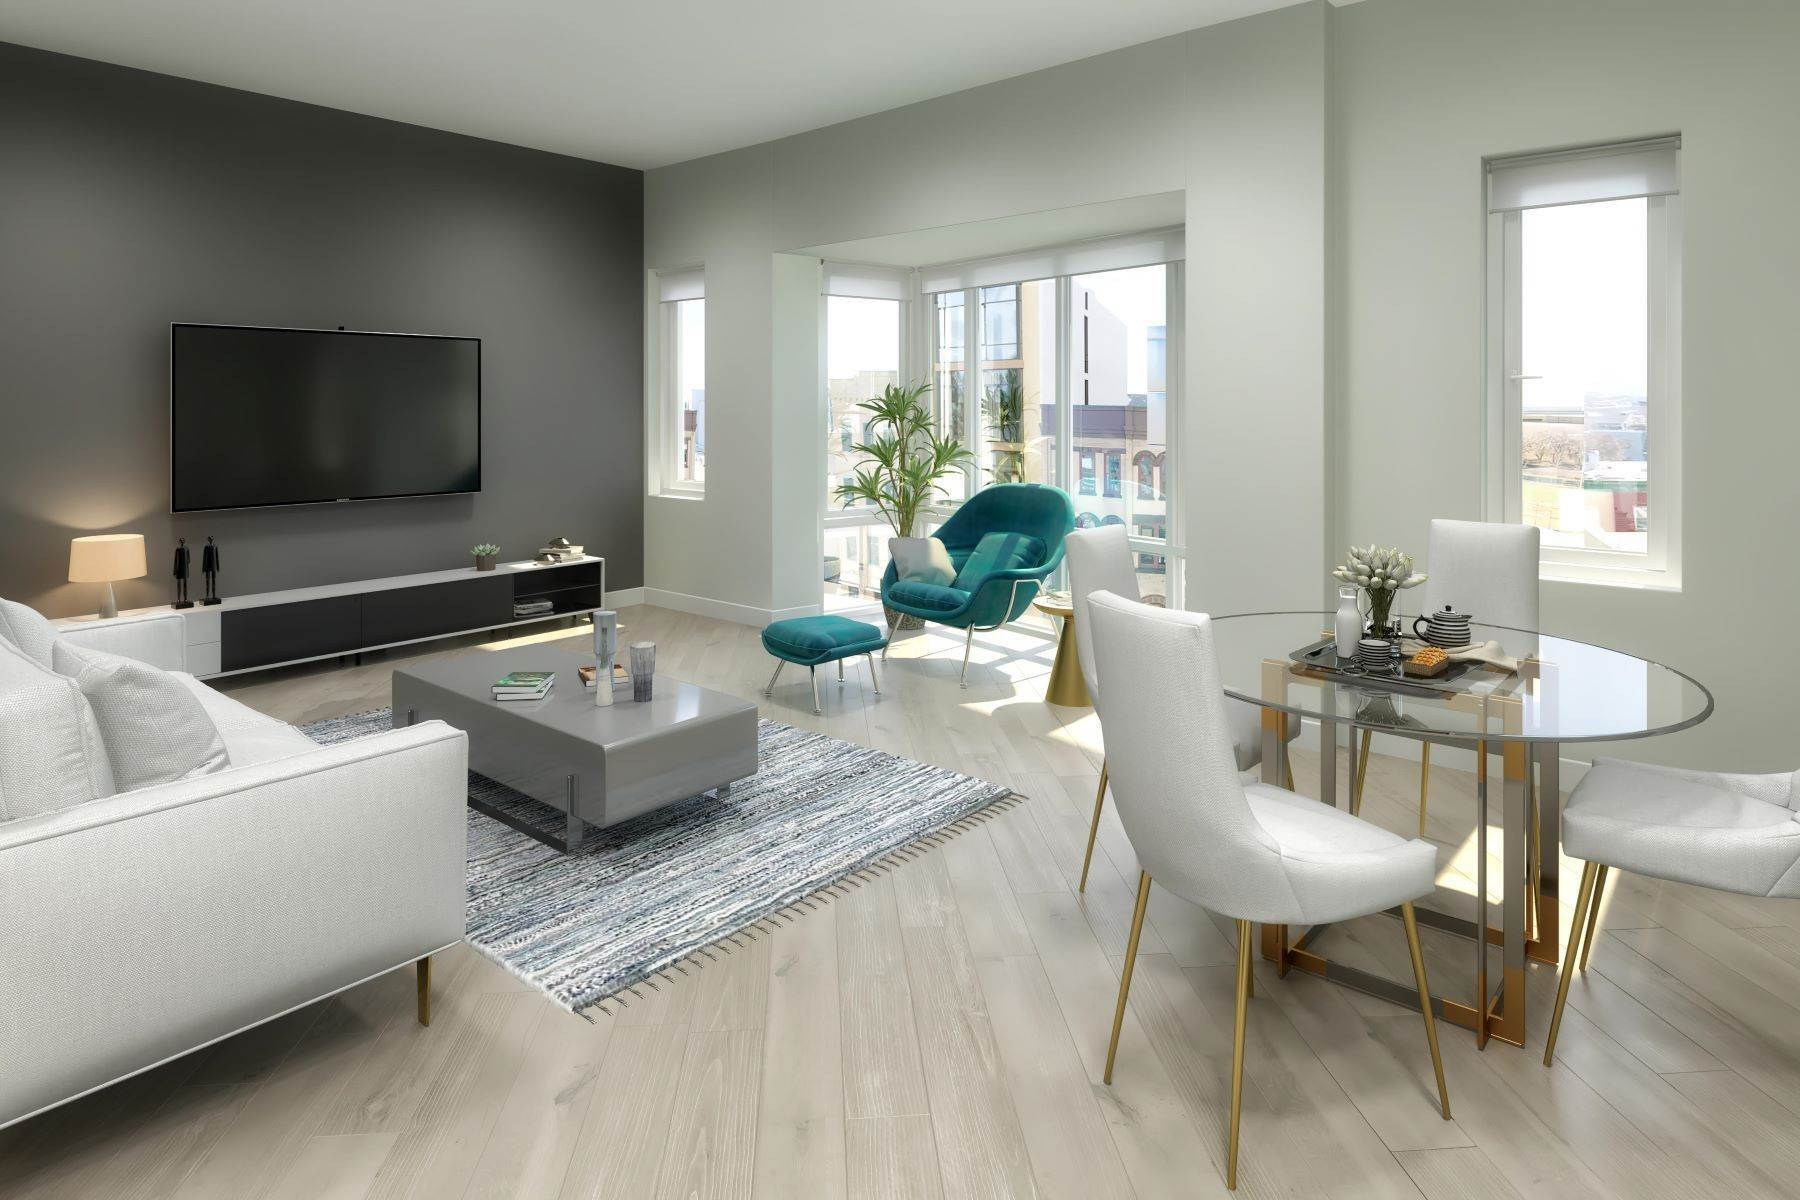 Condominiums for Sale at Welcome to downtown Jersey City's newest luxury boutique condominium building, 332 Newark Avenue, Unit 5B Jersey City, New Jersey 07302 United States